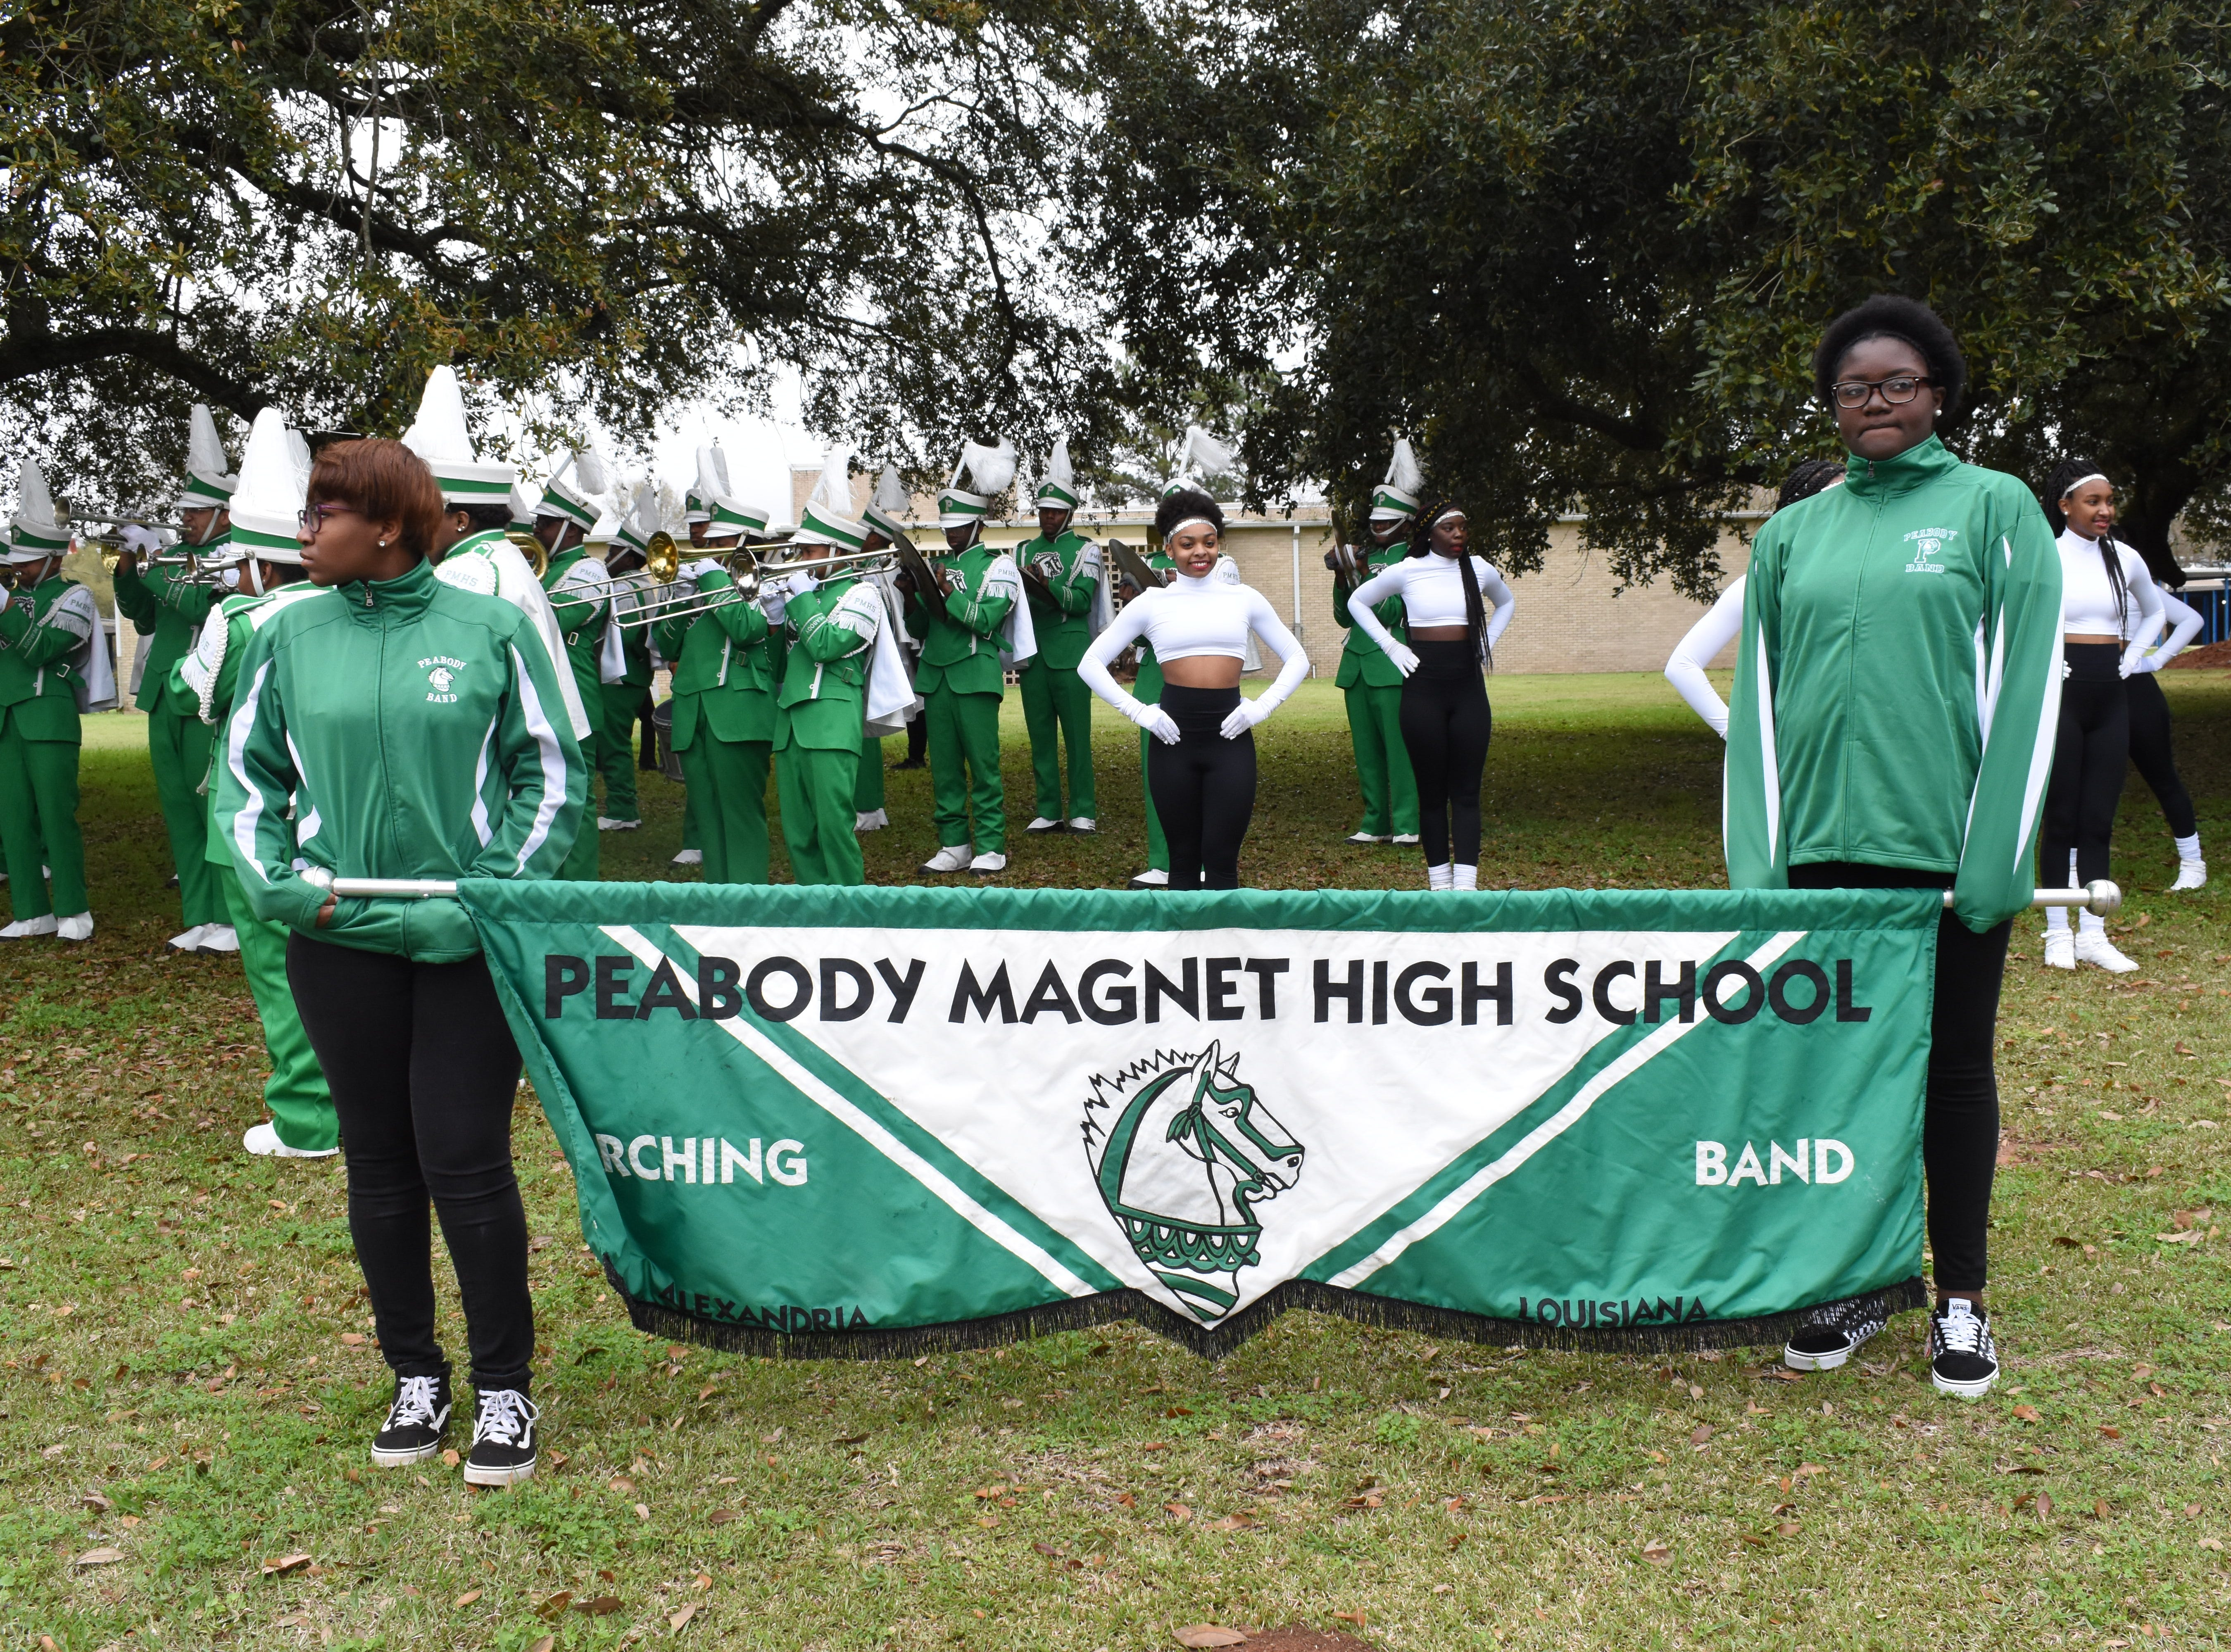 The Alexandria Mardi Gras Association's 26th annual Krewes Parade was held Sunday, March 3, 2019. The parade consisting of over 20 krewe floats, the Grambling University Band, The Peabody Magnet High School Band and the Ville Platte High School Band, proceeded from Monroe and Texas Streets to the Alexandria Mall.